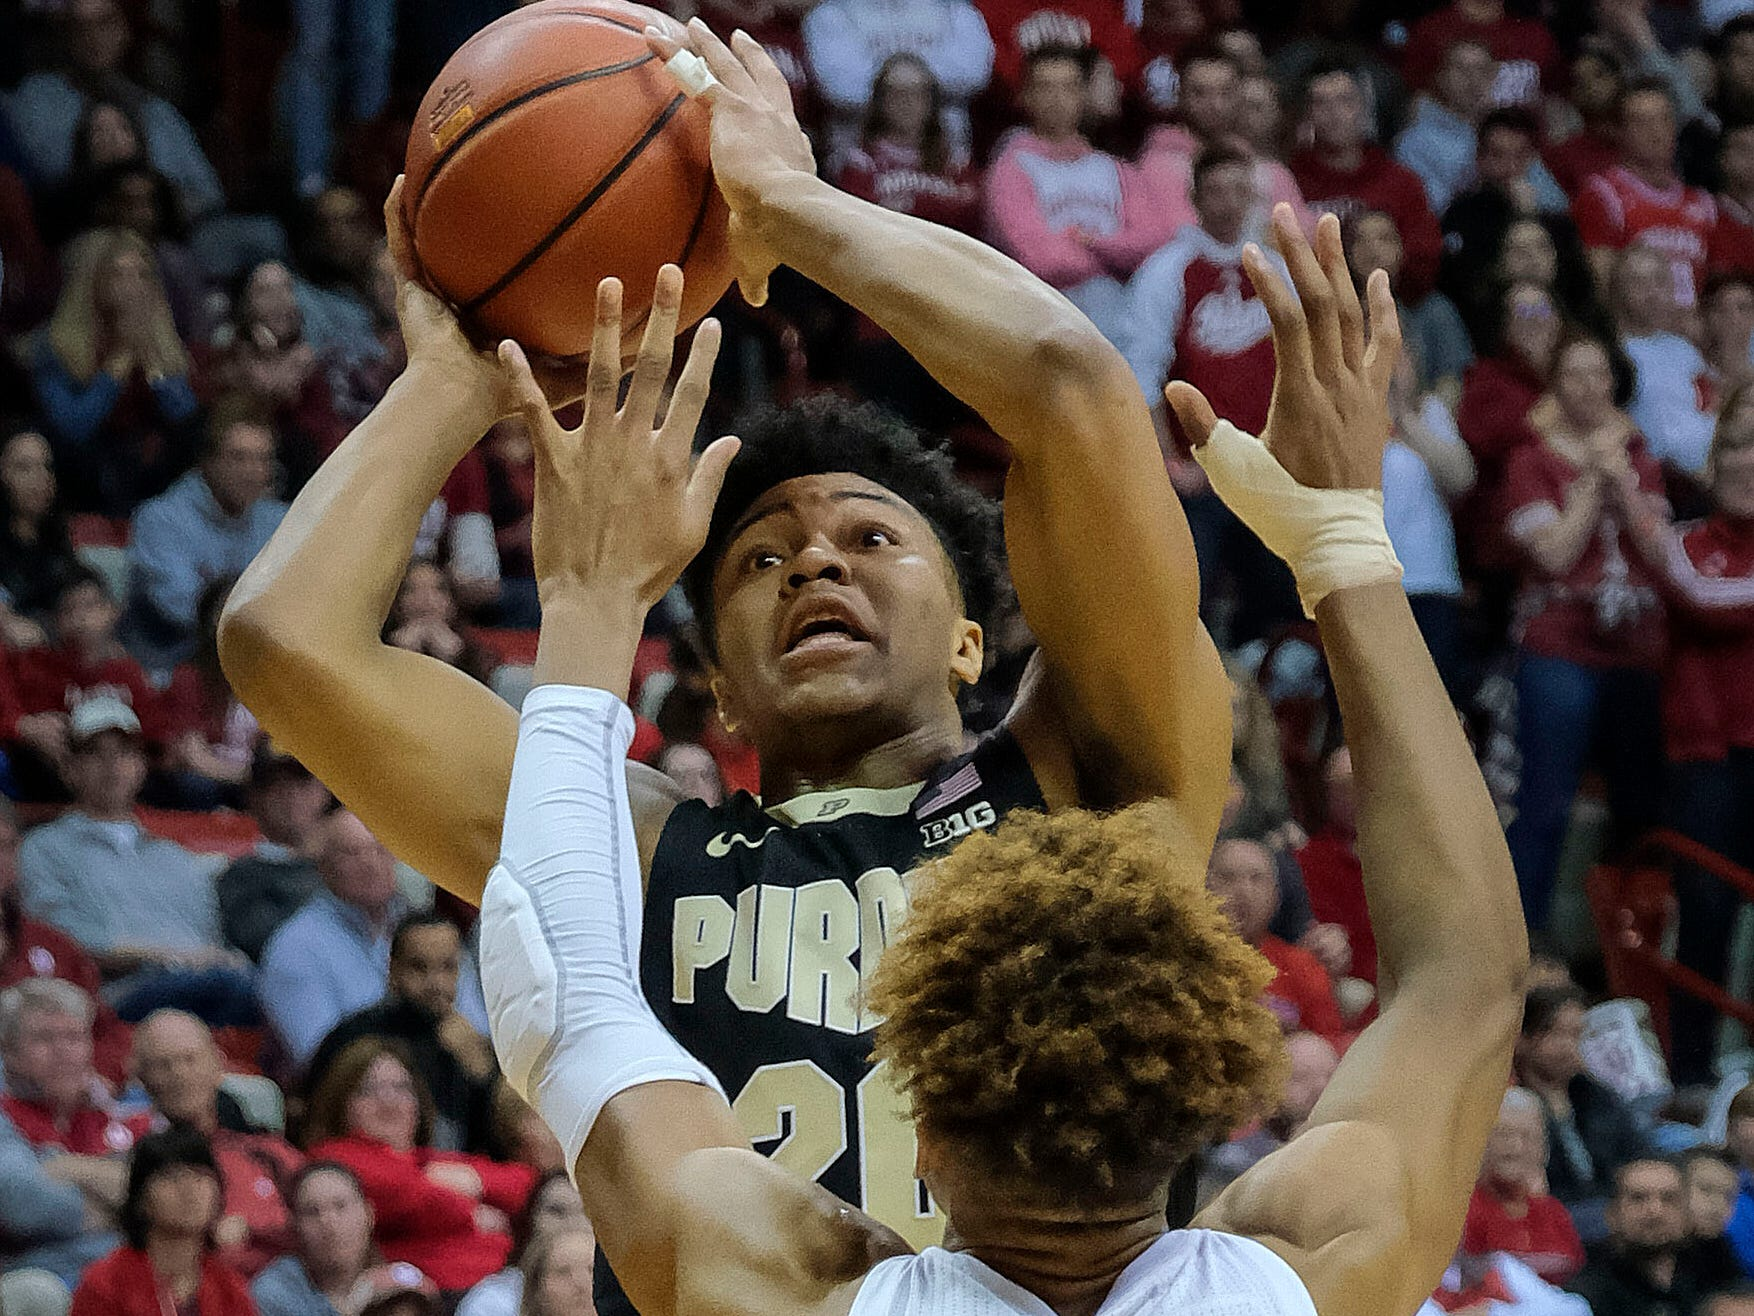 Purdue guard Nojel Eastern, rear, shoots over Indiana guard Romeo Langford during the first half of an NCAA college basketball game in Bloomington, Ind., Tuesday, Feb. 19, 2019. (AP Photo/AJ Mast)